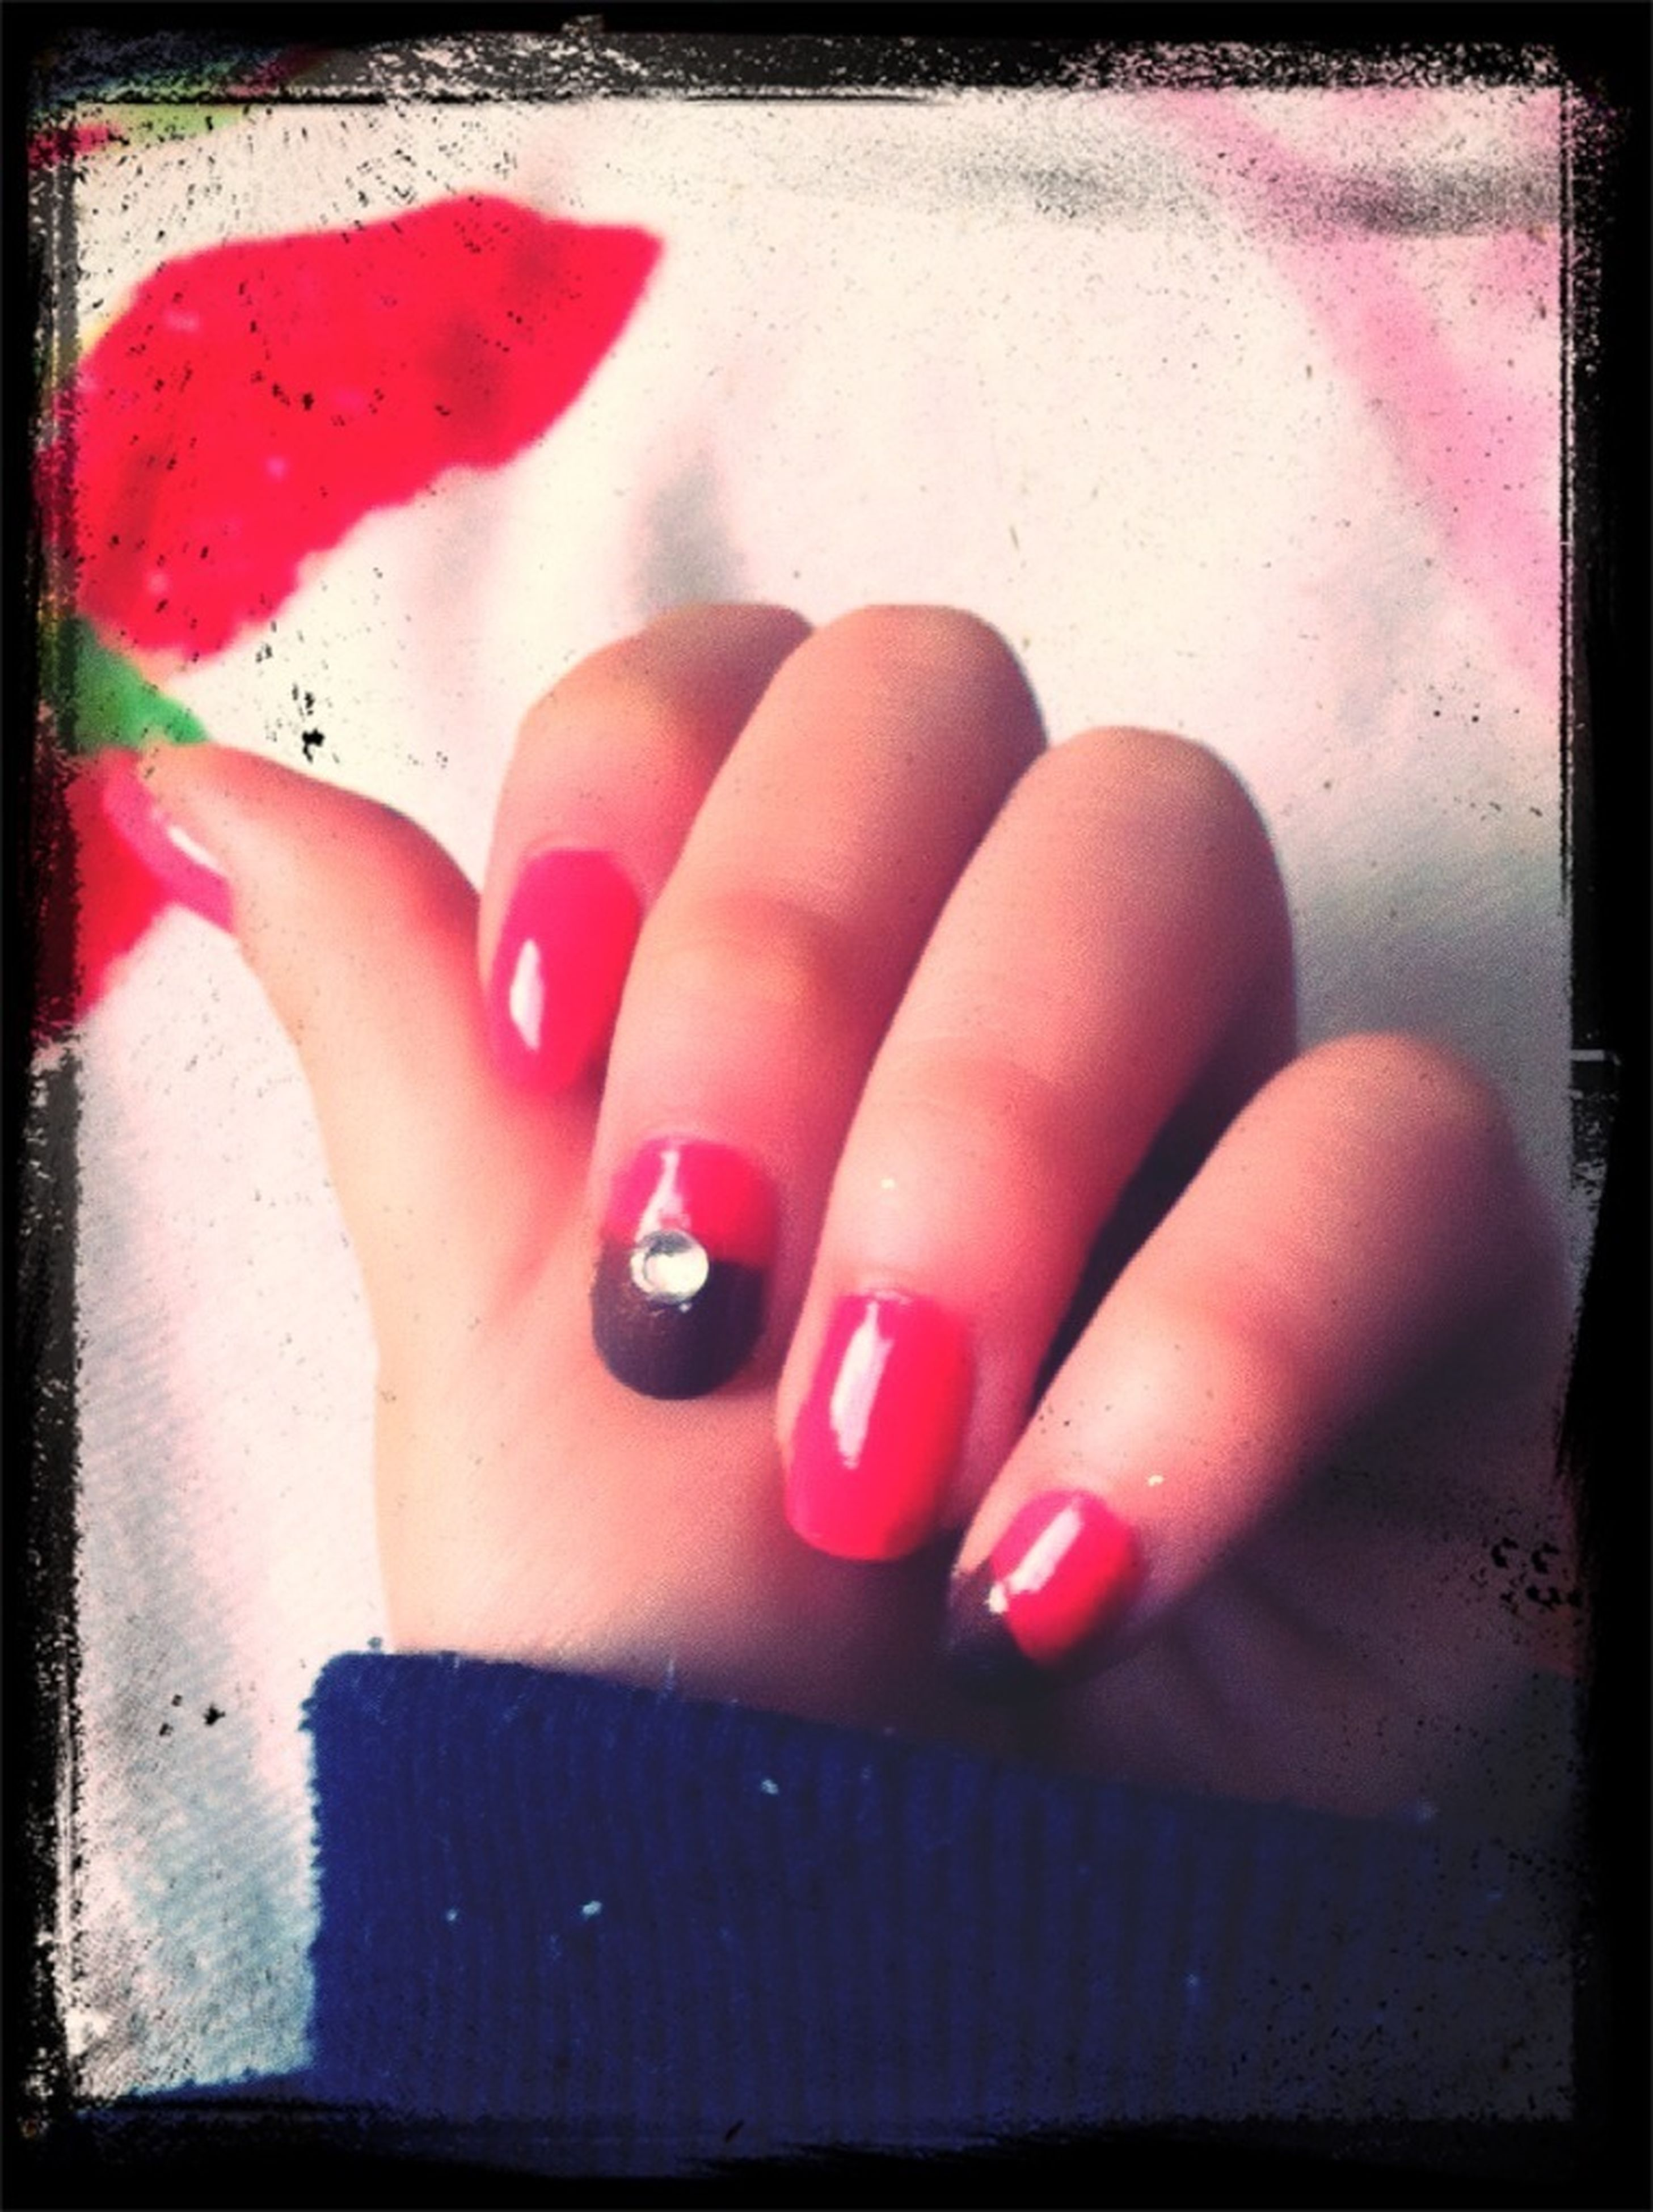 indoors, transfer print, person, red, auto post production filter, part of, lifestyles, close-up, high angle view, holding, human finger, pink color, cropped, leisure activity, nail polish, personal perspective